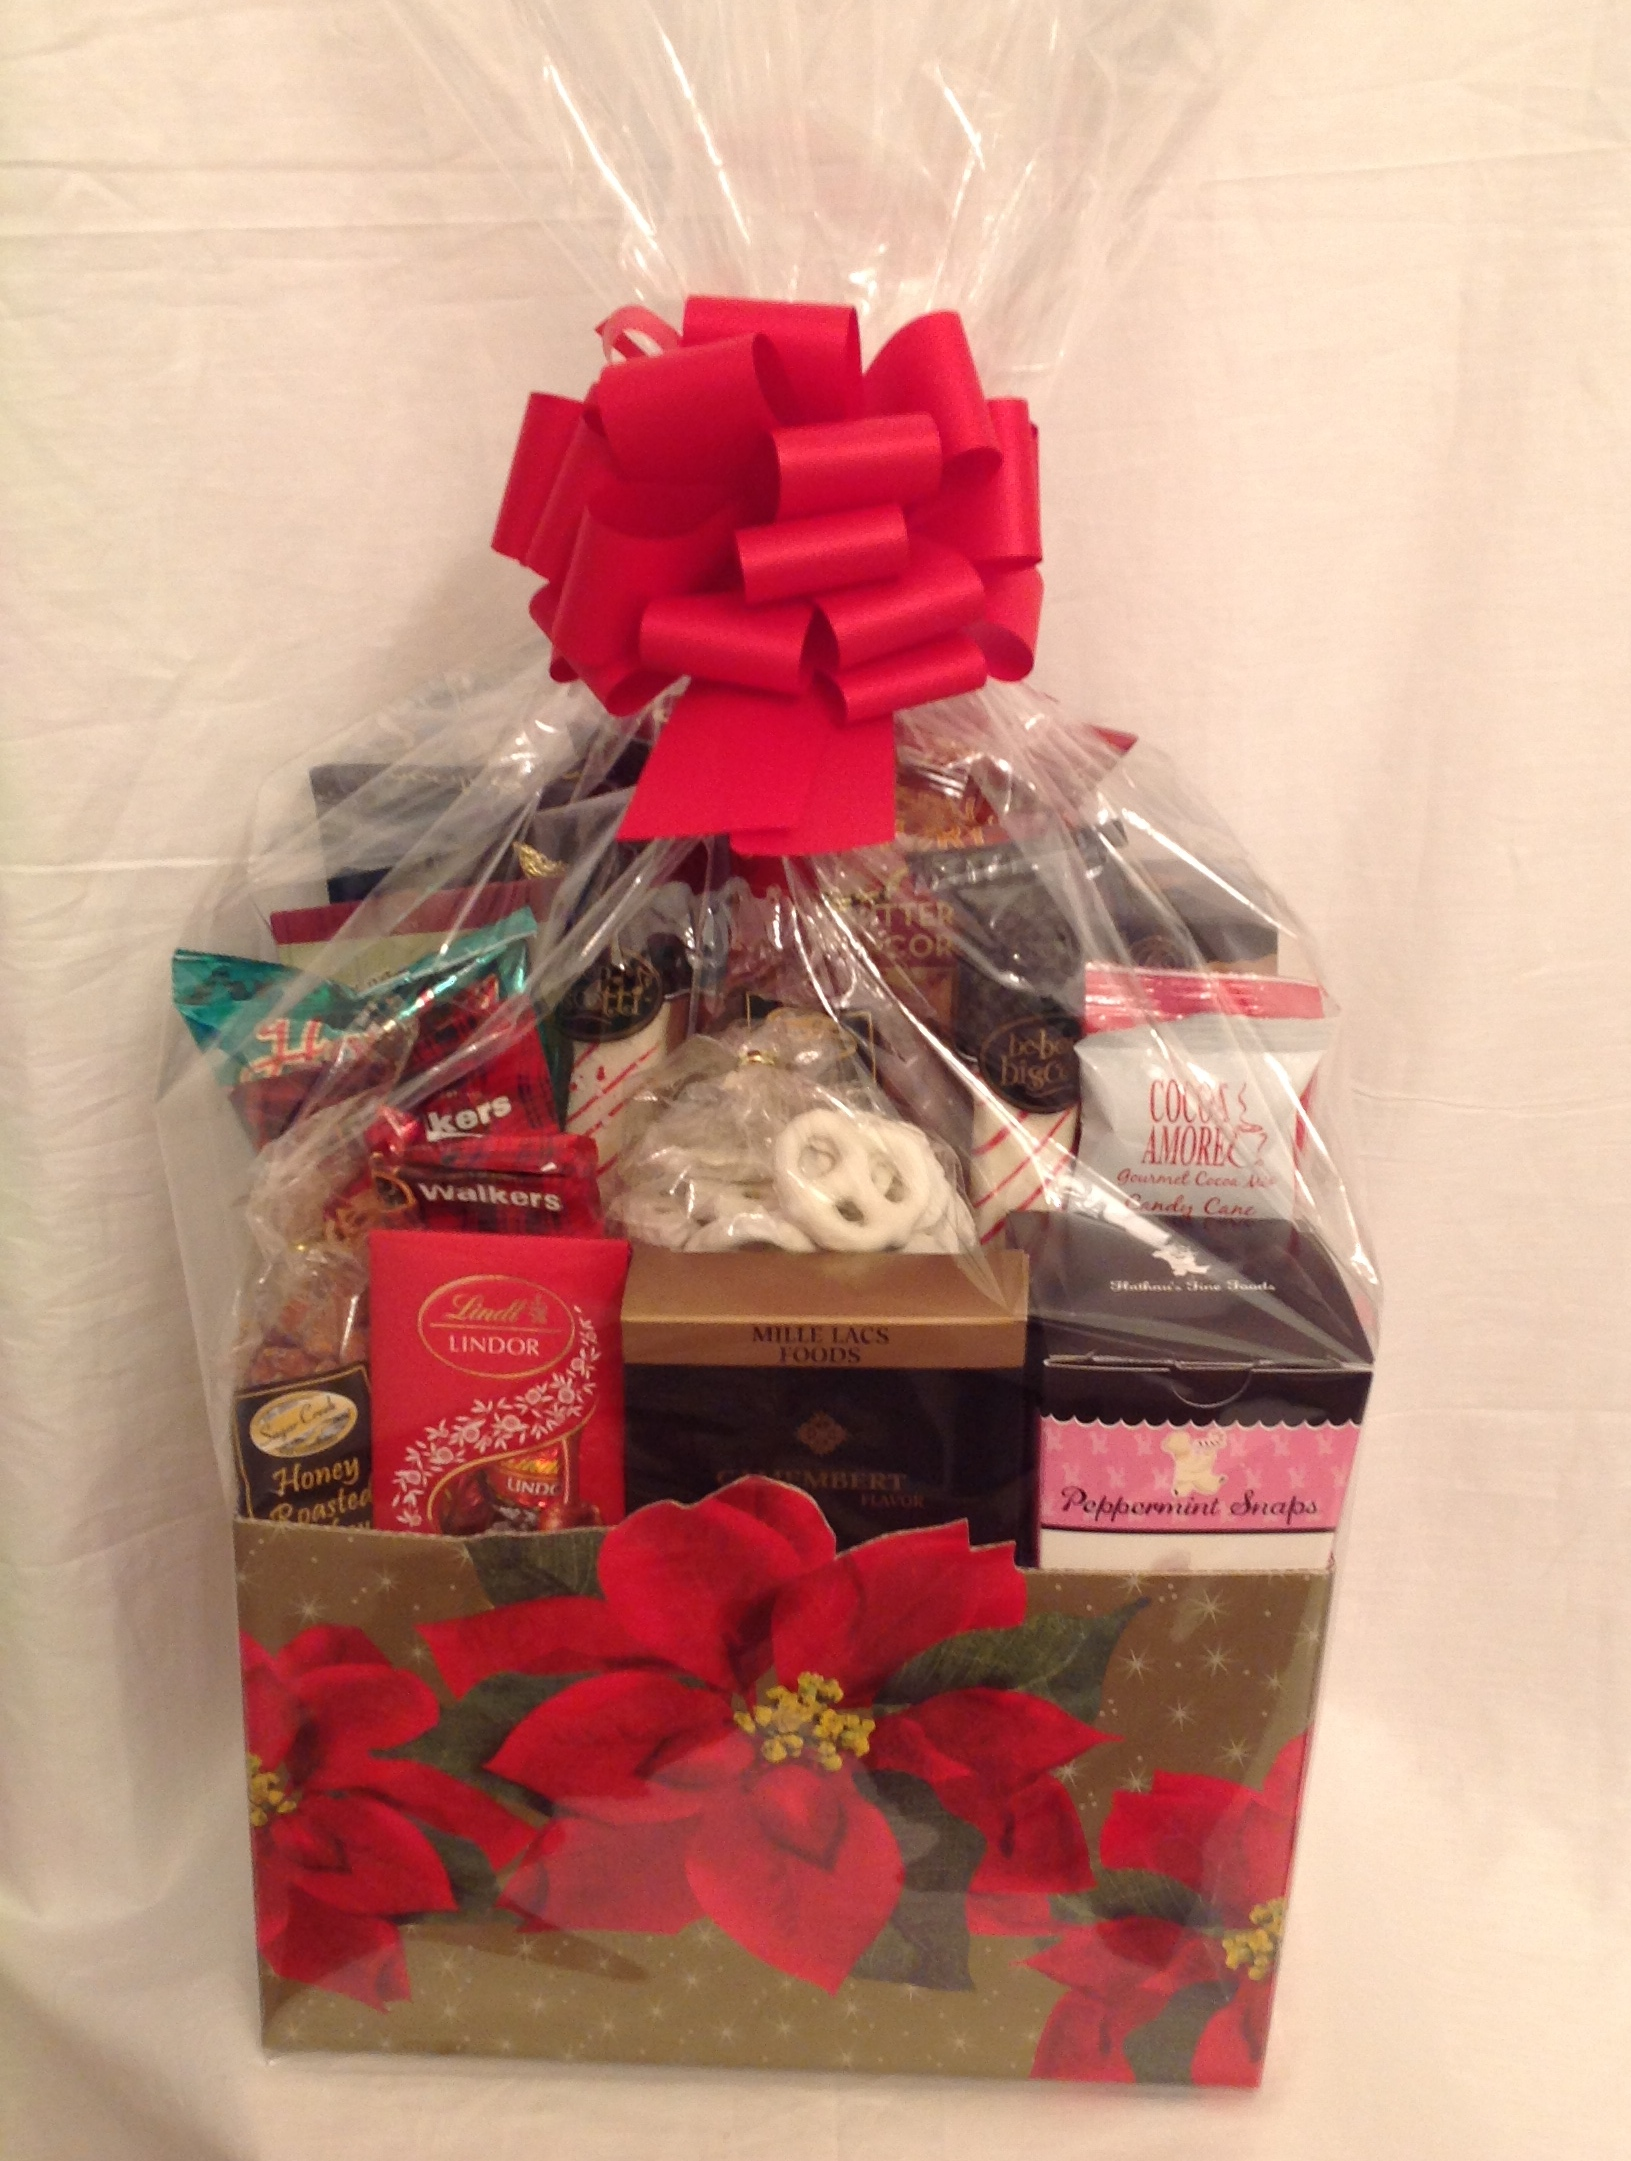 Holiday greetings gifts for clients at christmas for Holiday gift ideas clients